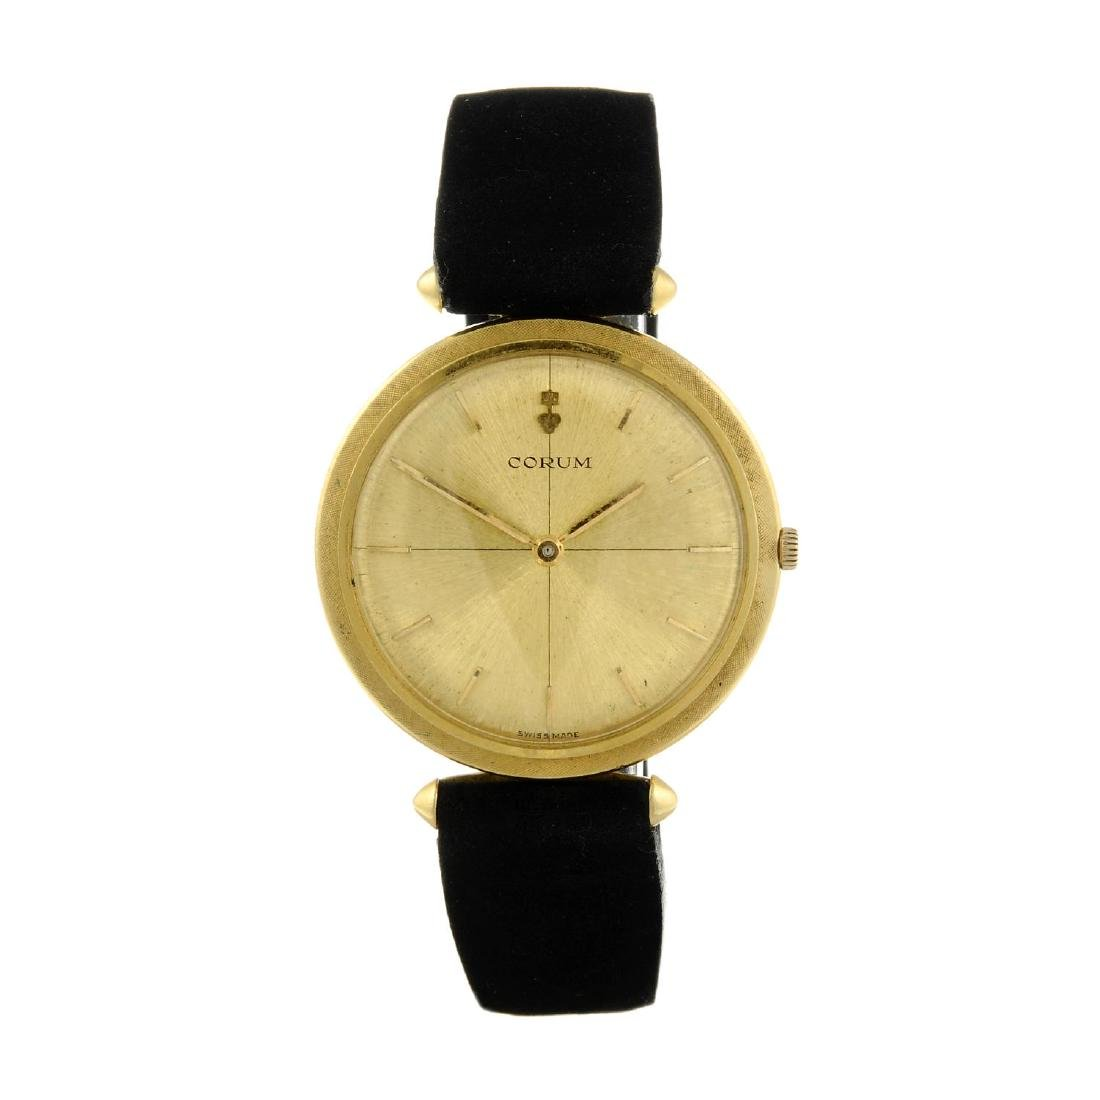 CORUM - a gentleman's wrist watch. Yellow metal case,